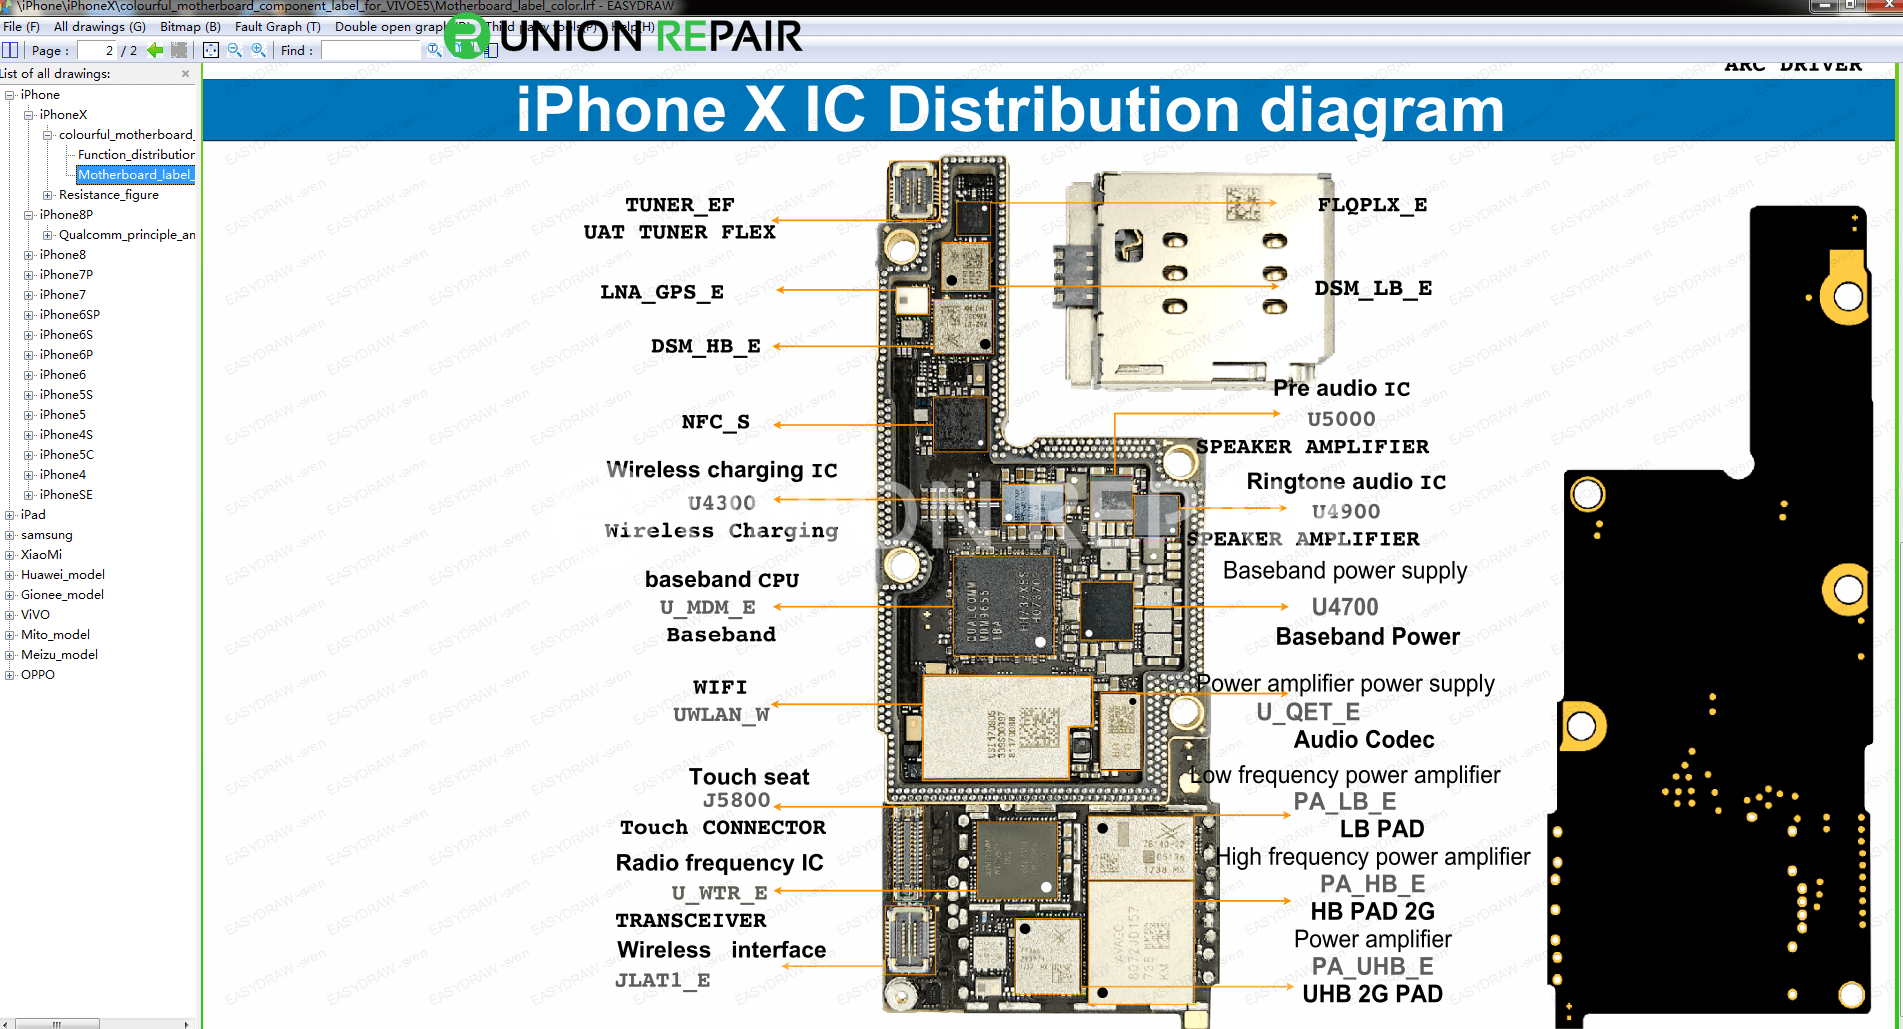 Motherboard Connection Diagram Electrical Wiring Diagrams Ht2000 Smartphone Schematic Diy Enthusiasts U2022 Toshiba Satellite Connections